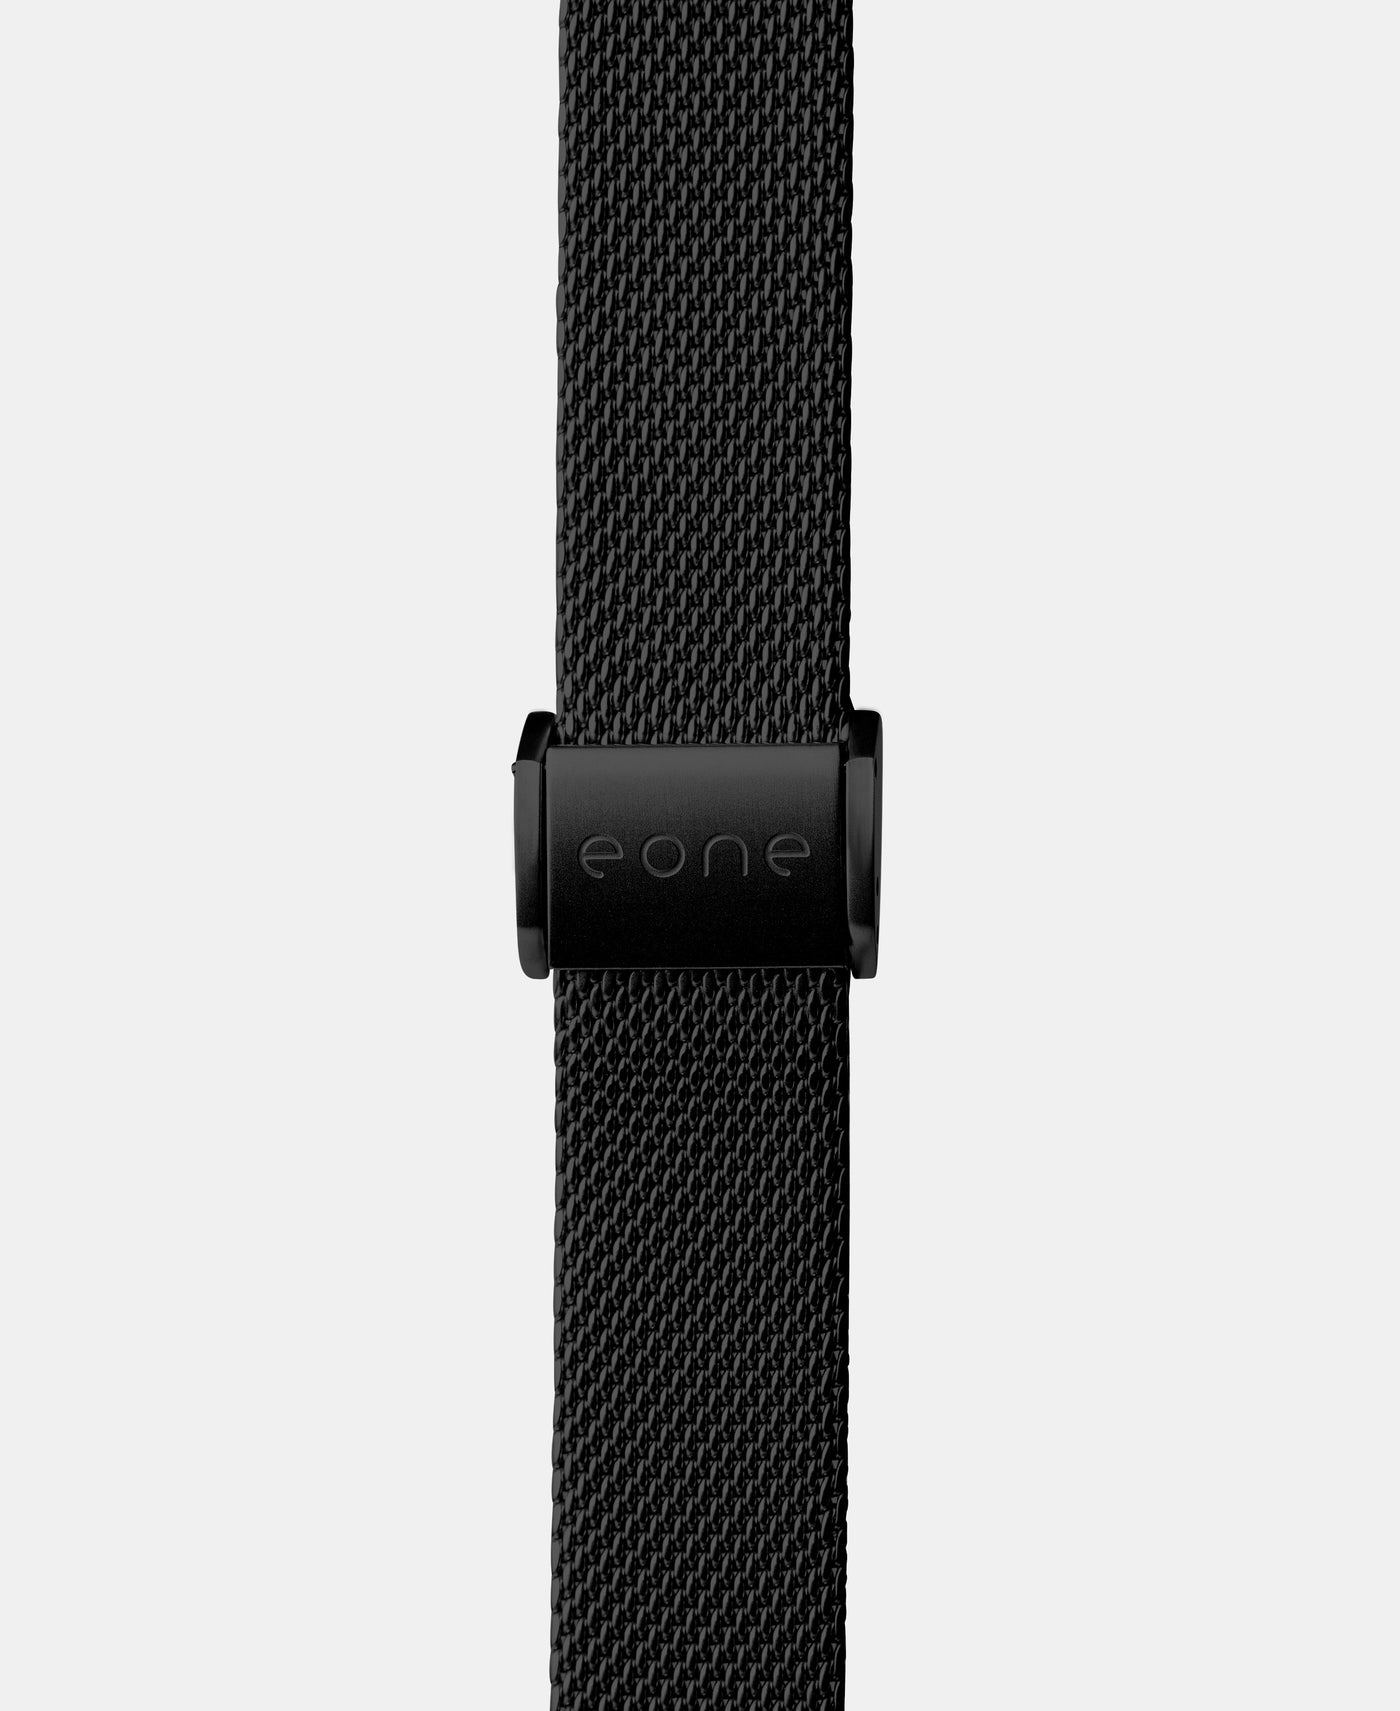 A photo shows the strap lying on a flat surface. One part has a fixed clasp and the other part has an adjustable clasp for a custom fit.